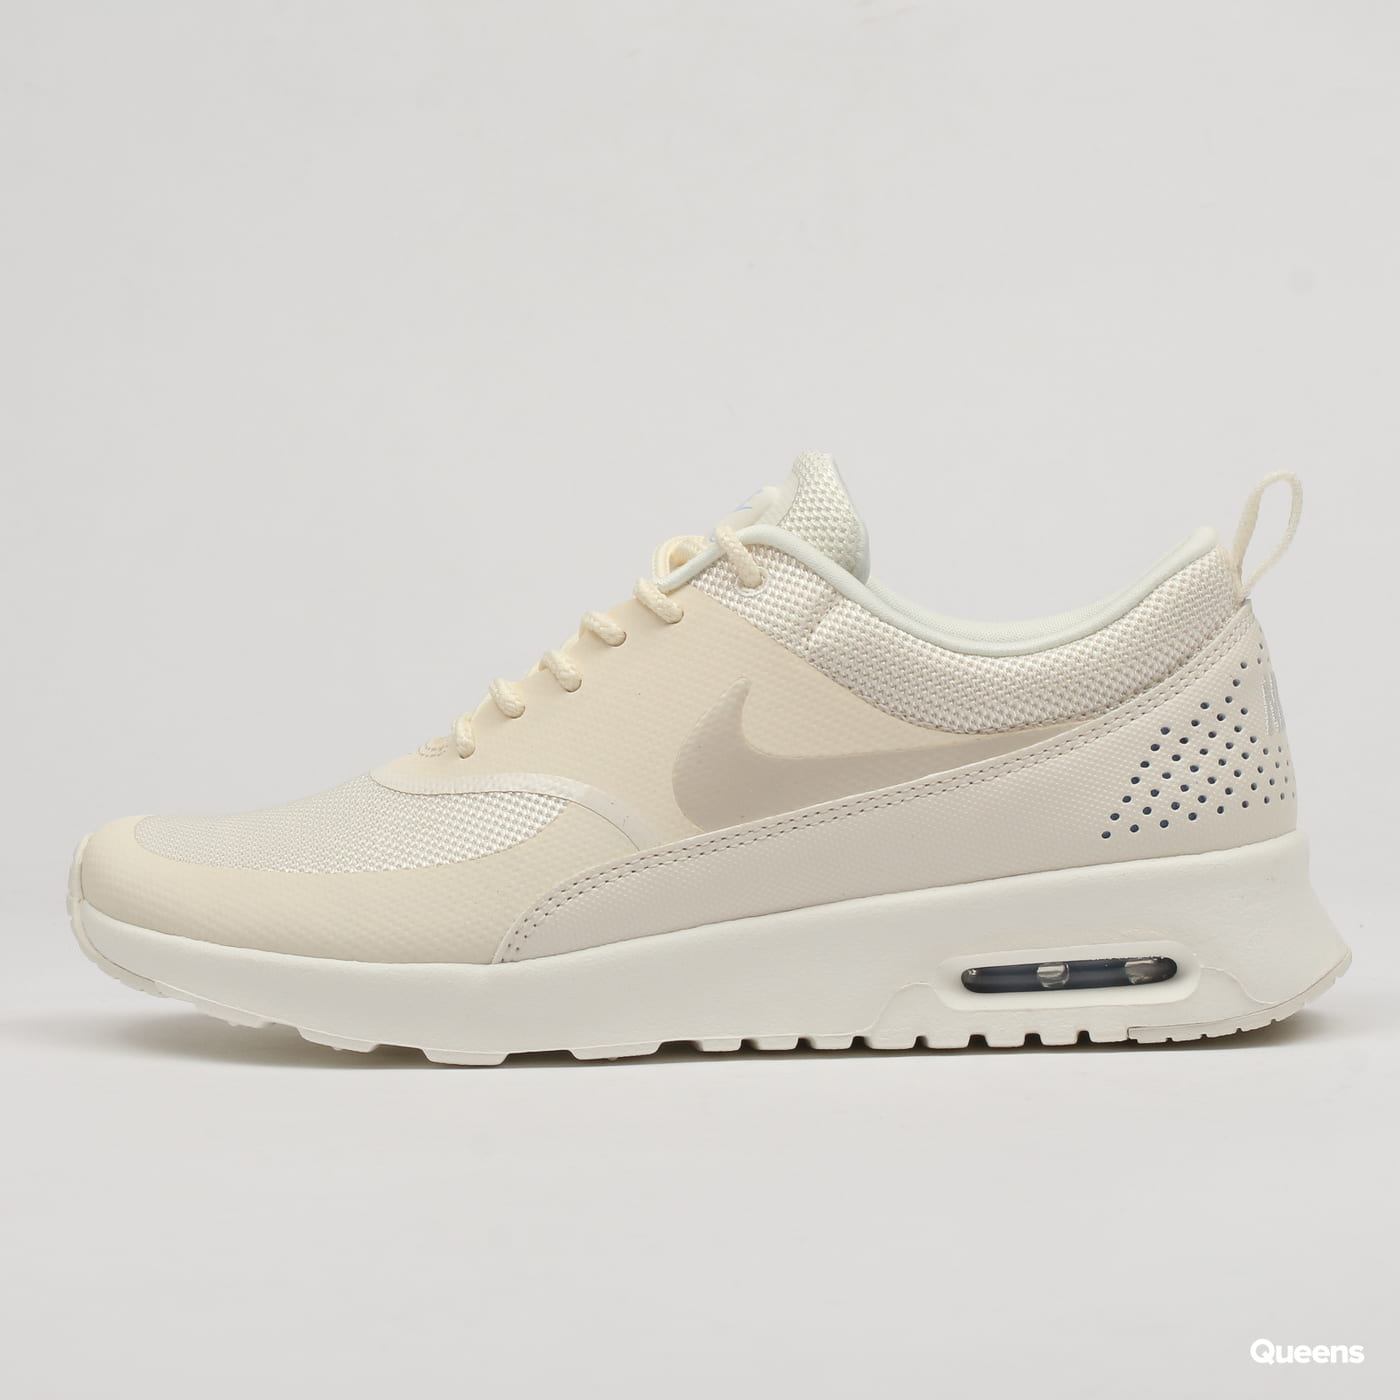 best website 2f160 e1a18 Zoom in Zoom in Zoom in Zoom in Zoom in. Nike WMNS Air Max Thea ...